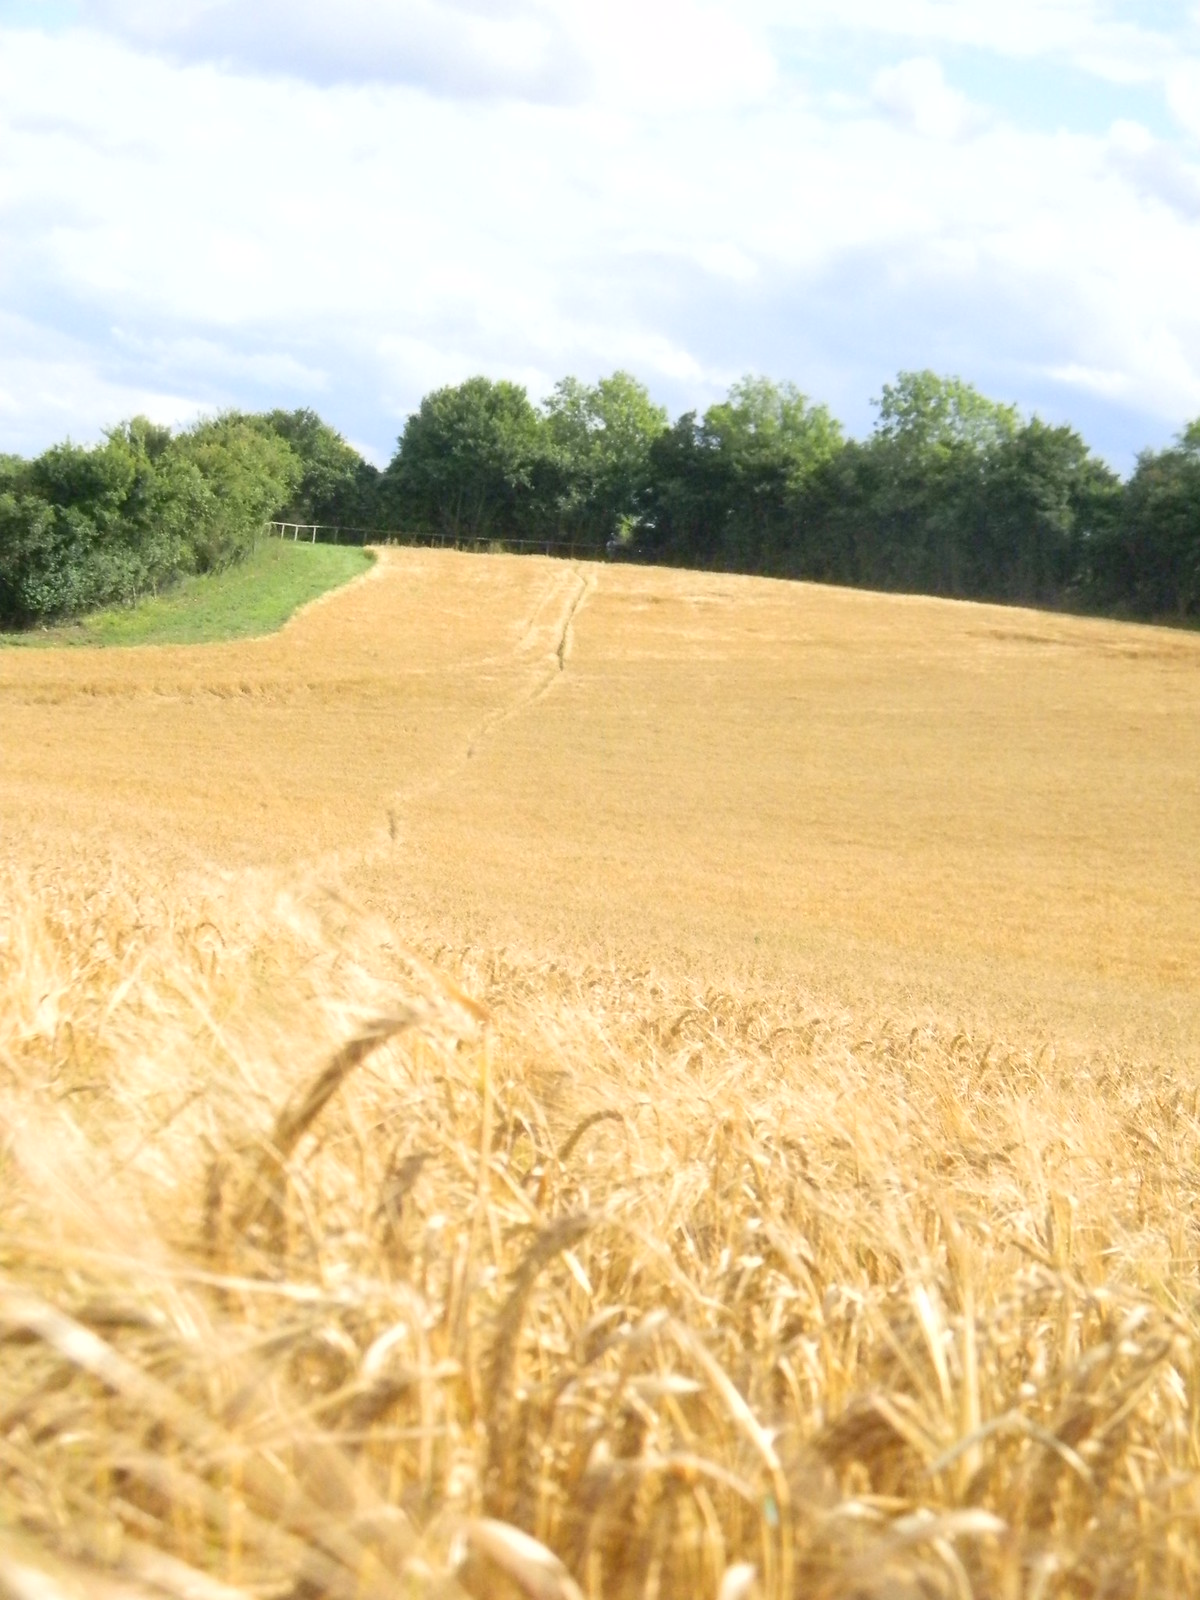 Path through Barley heading for Radnage Saunderton Circular via Bledlow